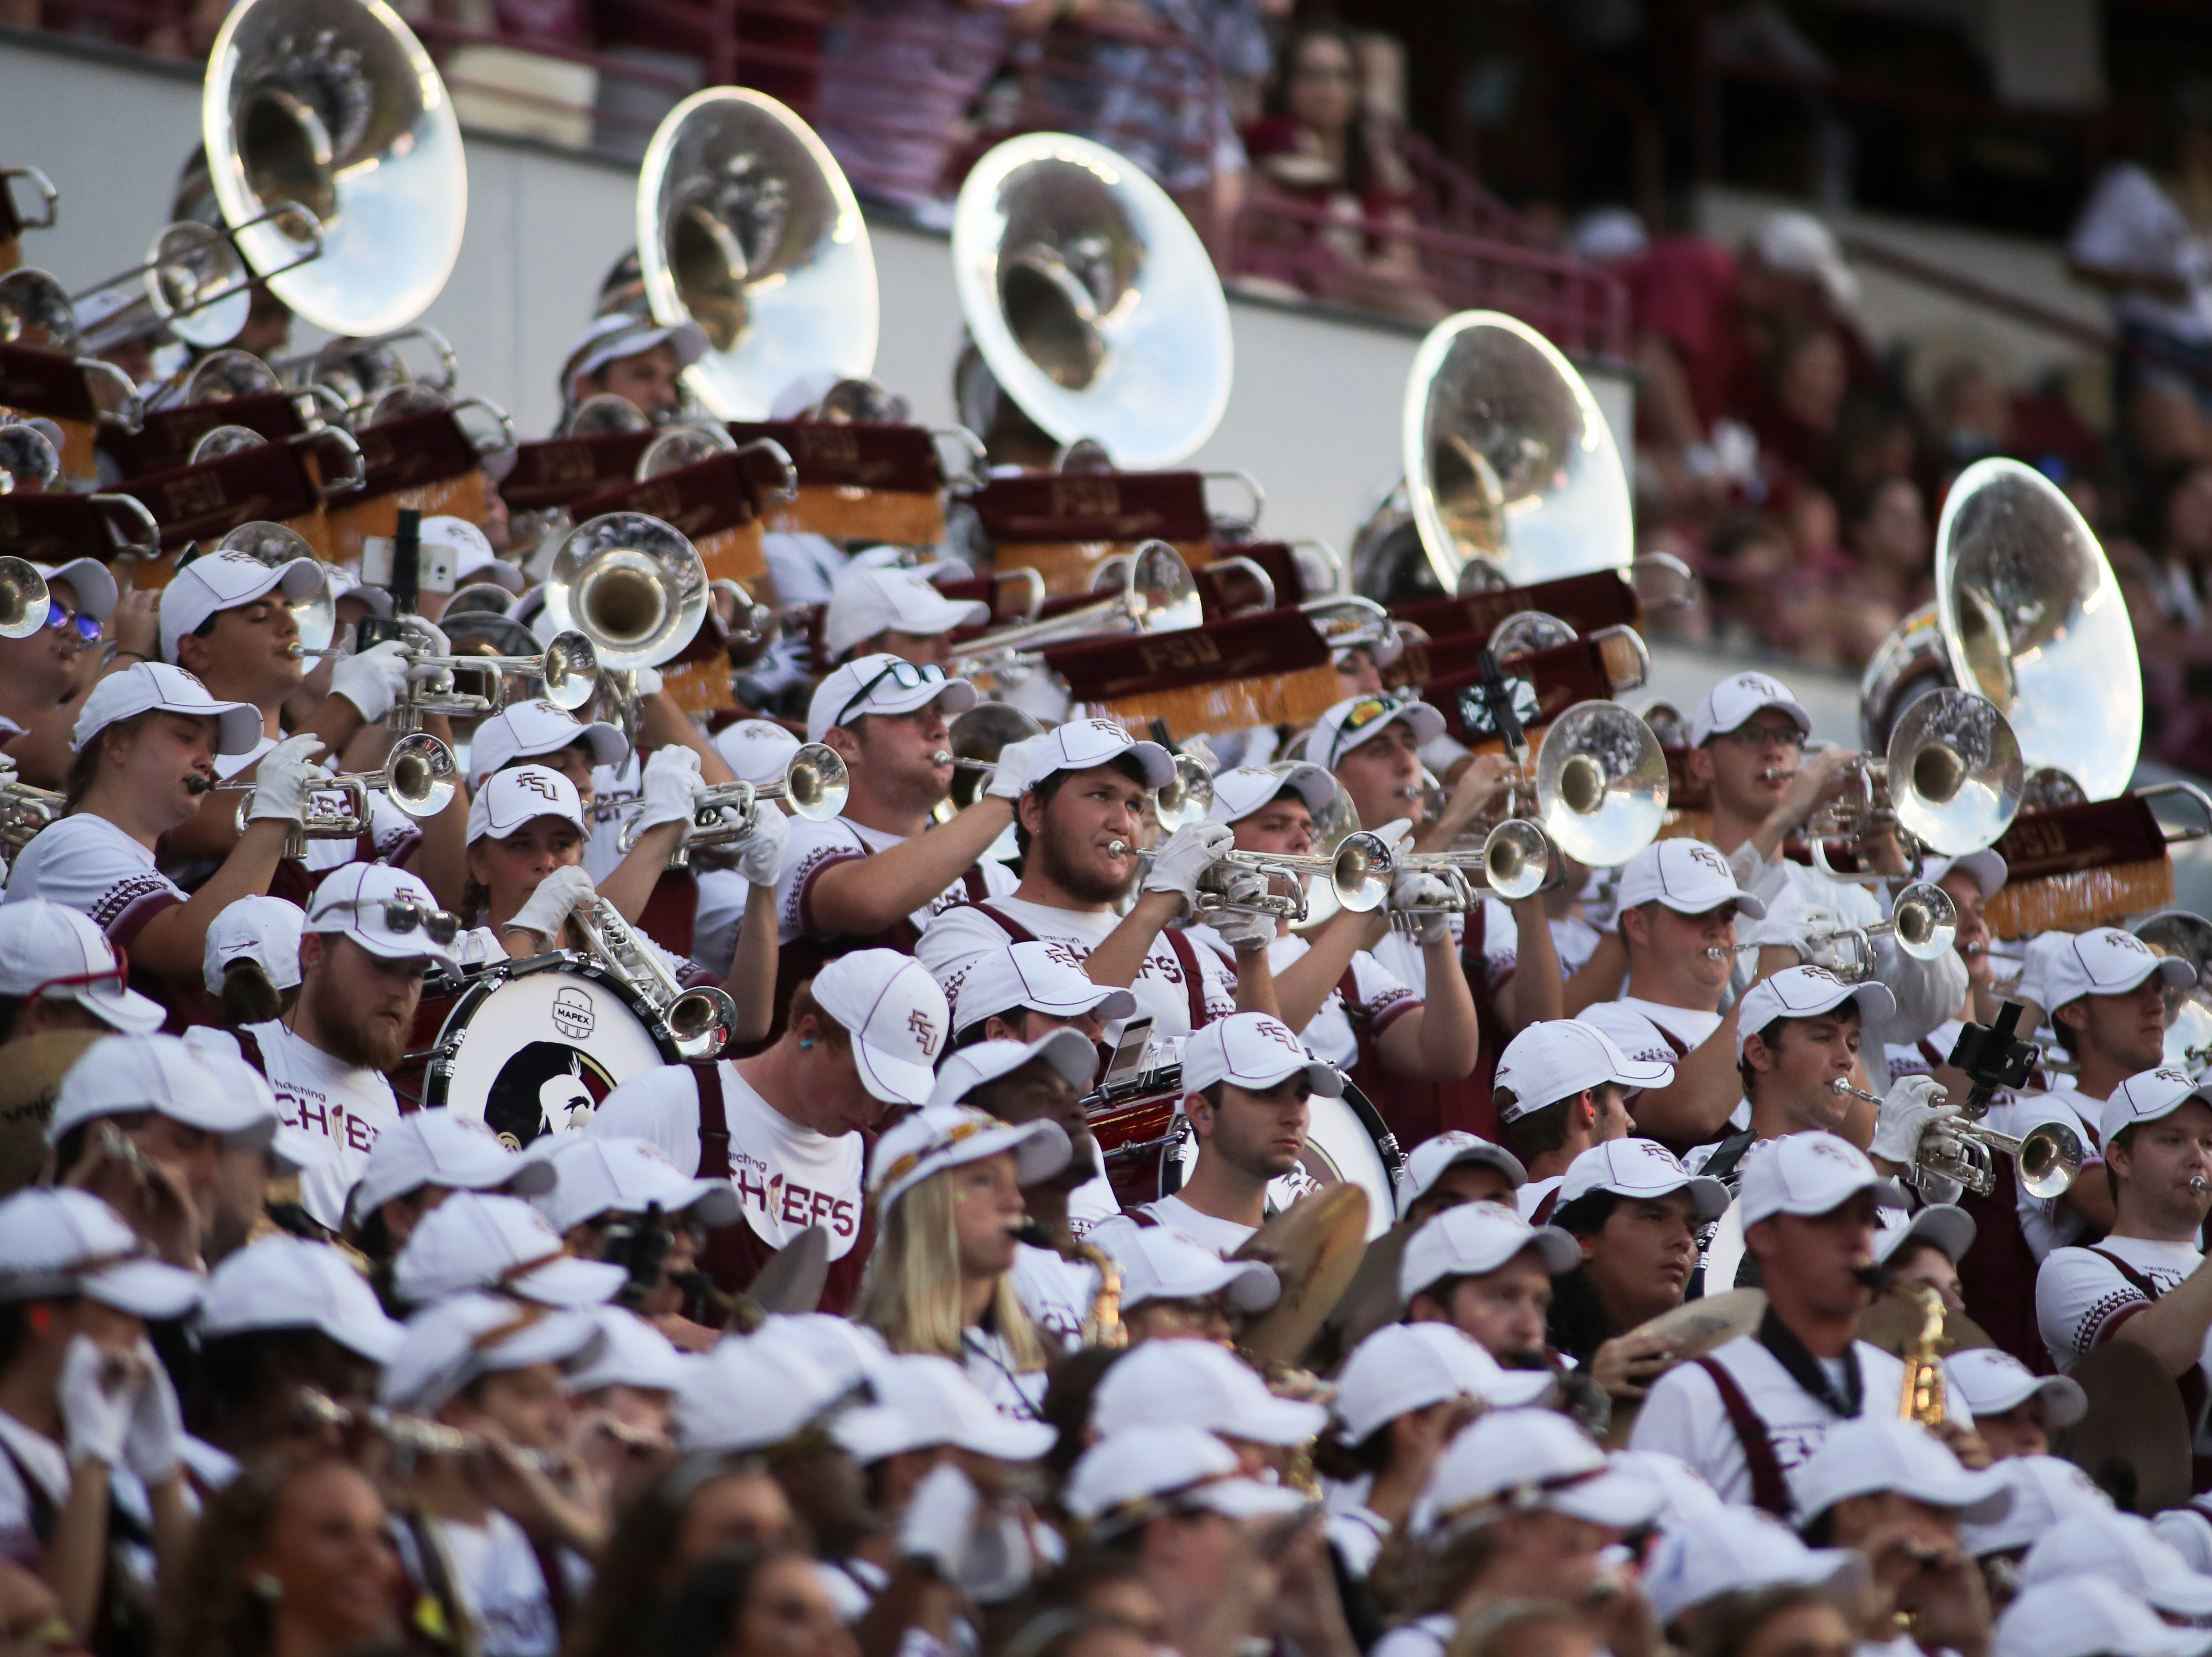 The Marching Chiefs play during FSU's homecoming game against Wake Forest at Doak S. Campbell Stadium Saturday, Oct. 20, 2018.